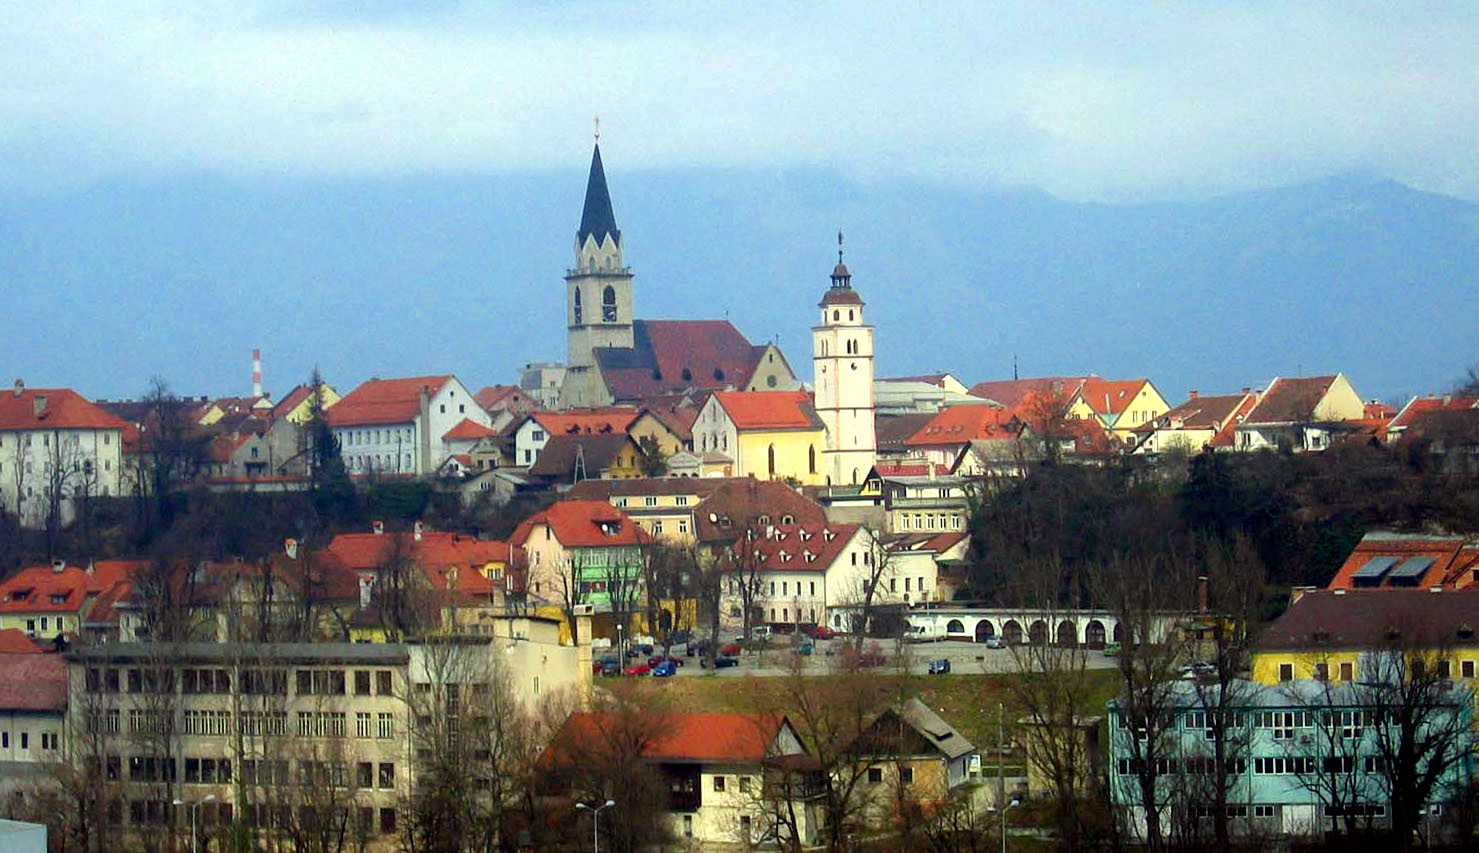 View of Kranj with St. Cantianus and Companions Parish Church (left) and Our Lady of the Rosary Church (right)